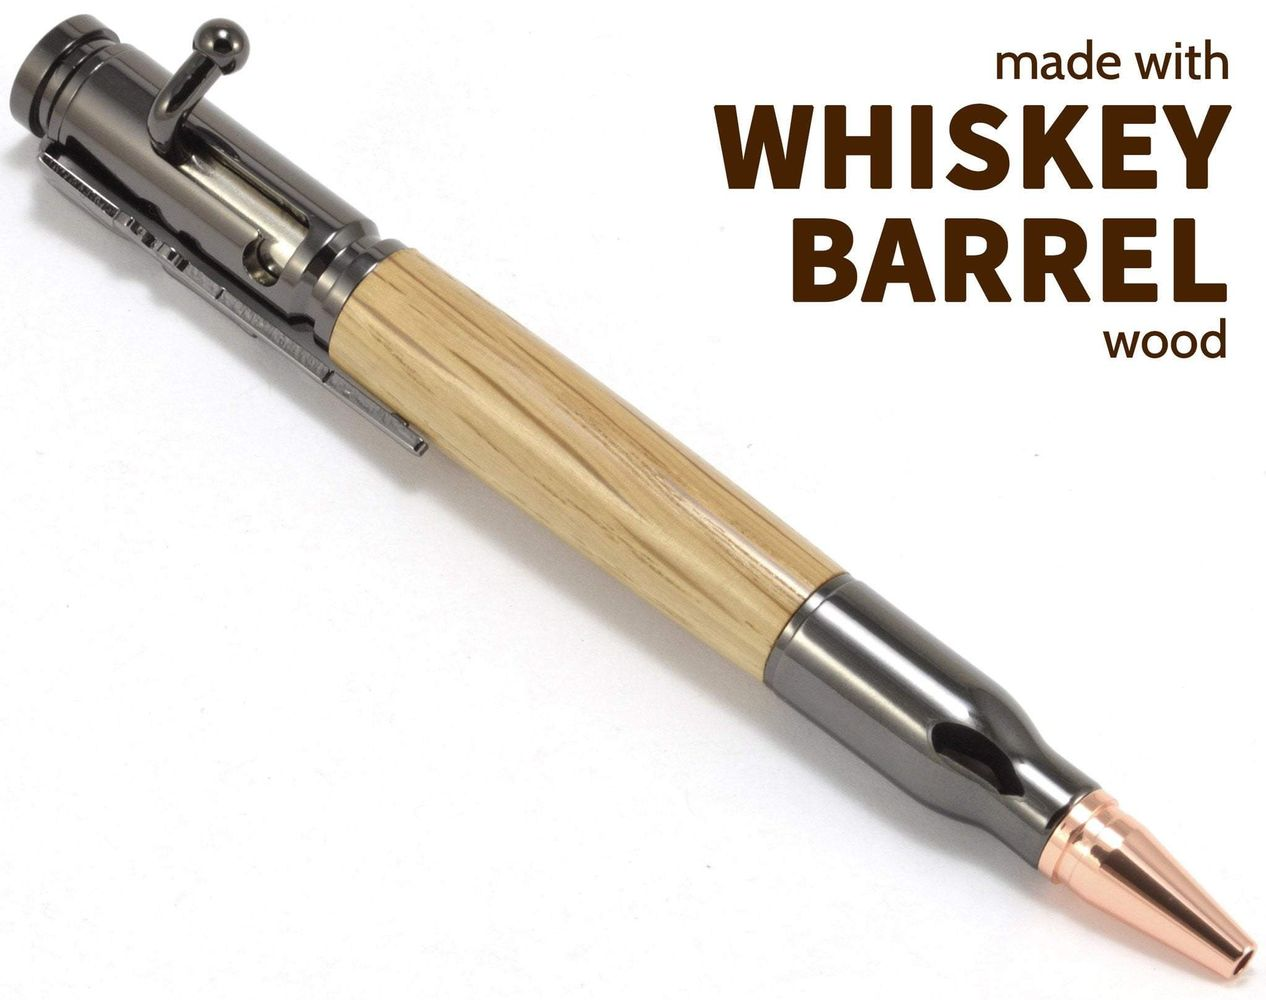 Bolt Action Pen in Whiskey Barrel by Autumn Woods Collective